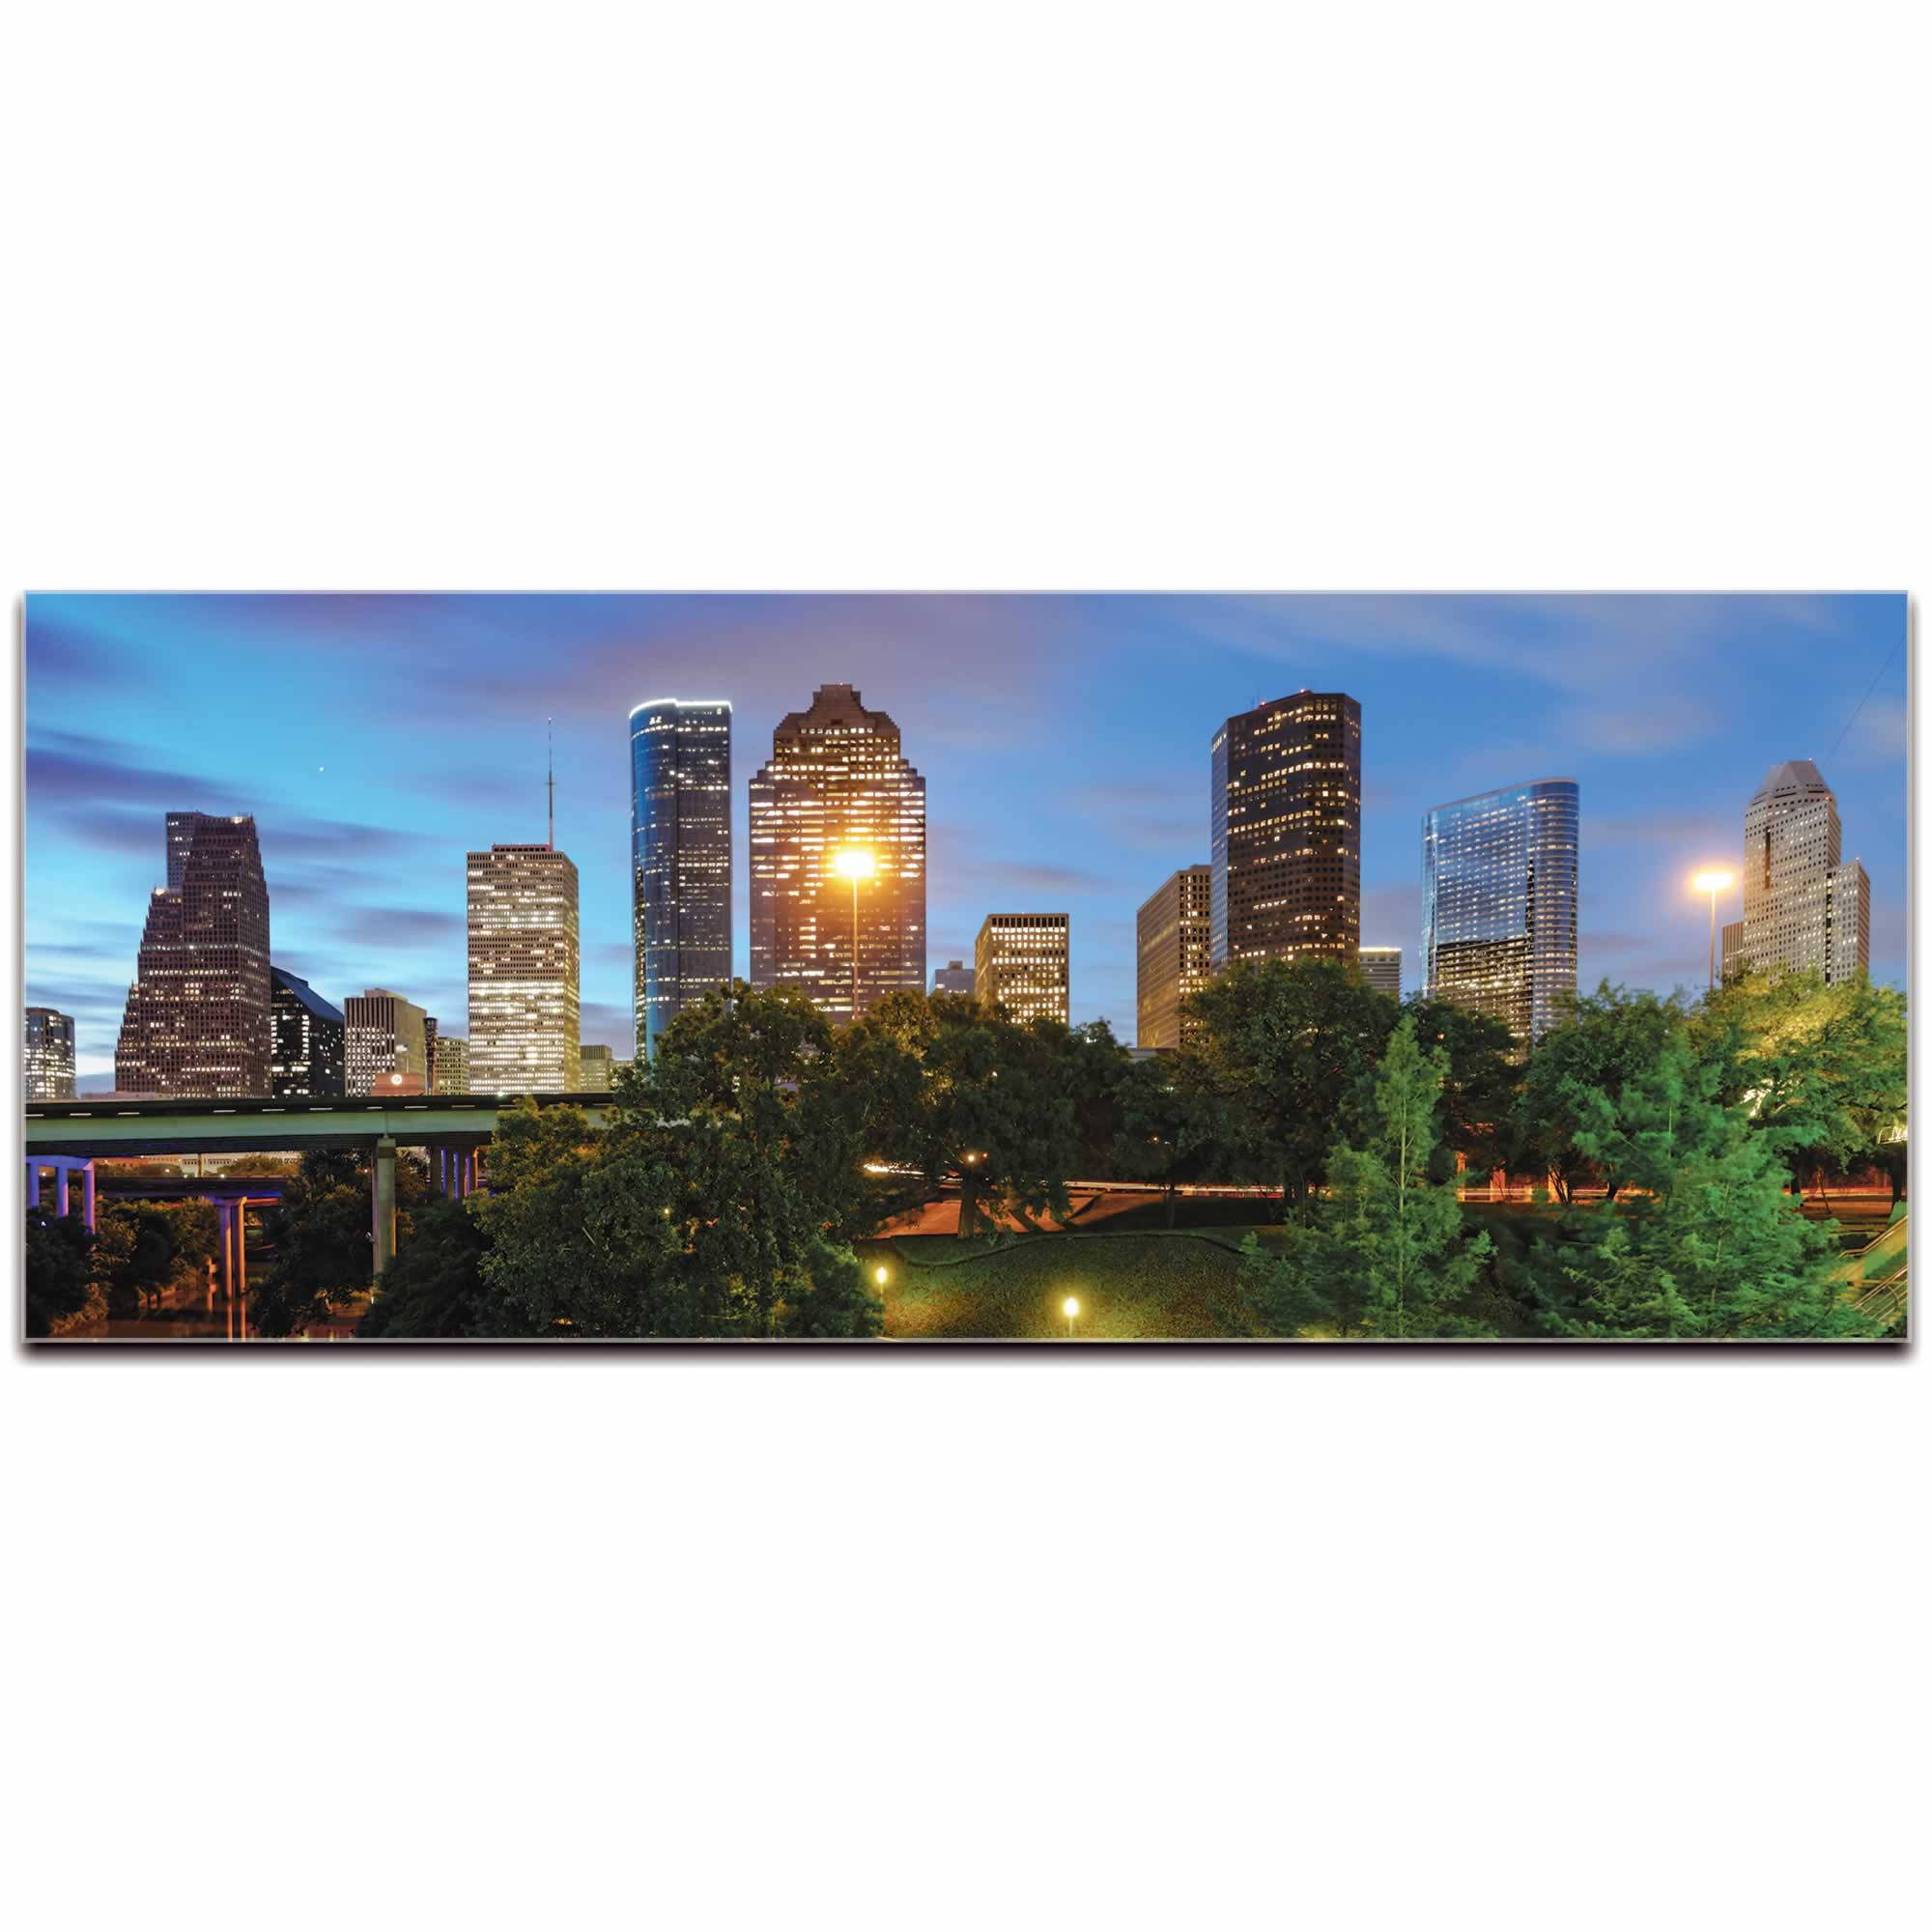 Houston City Skyline - Urban Modern Art Designer Home Decor Cityscape Wall Artwork  sc 1 st  Modern Crowd Inc & Metal Art Studio - Houston City Skyline | Urban Modern Art ...